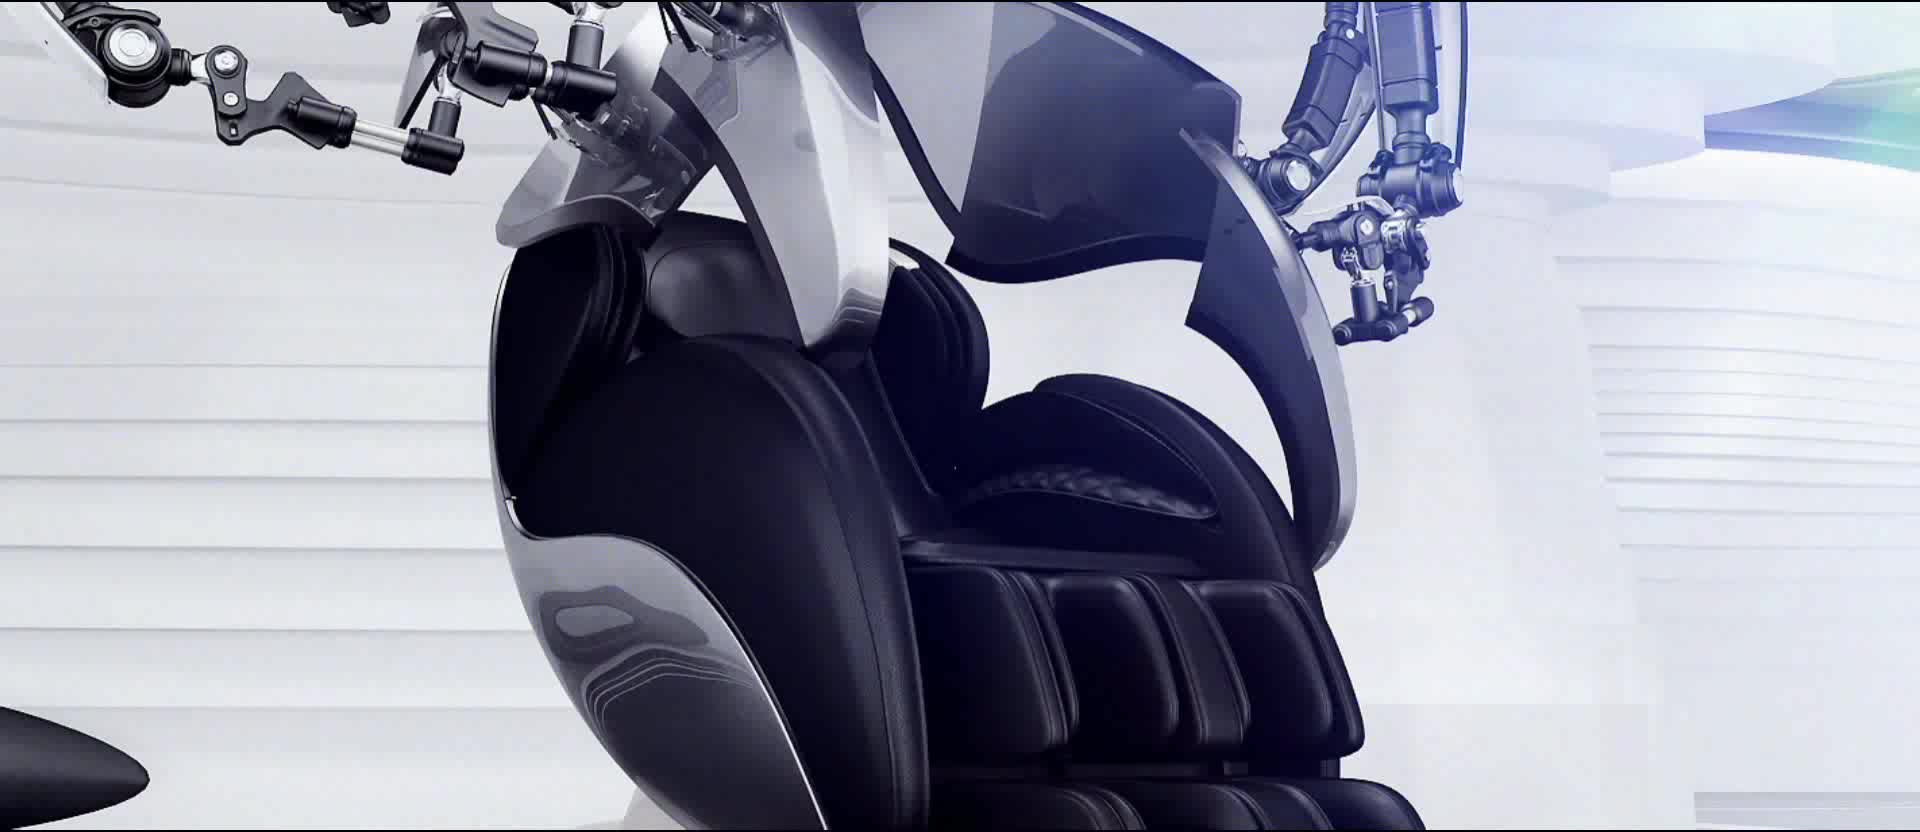 2019 Shiatsu Massage Chair Profecional Vending,Massage Chairs Zero Gravity Shiatsu Massage Chair